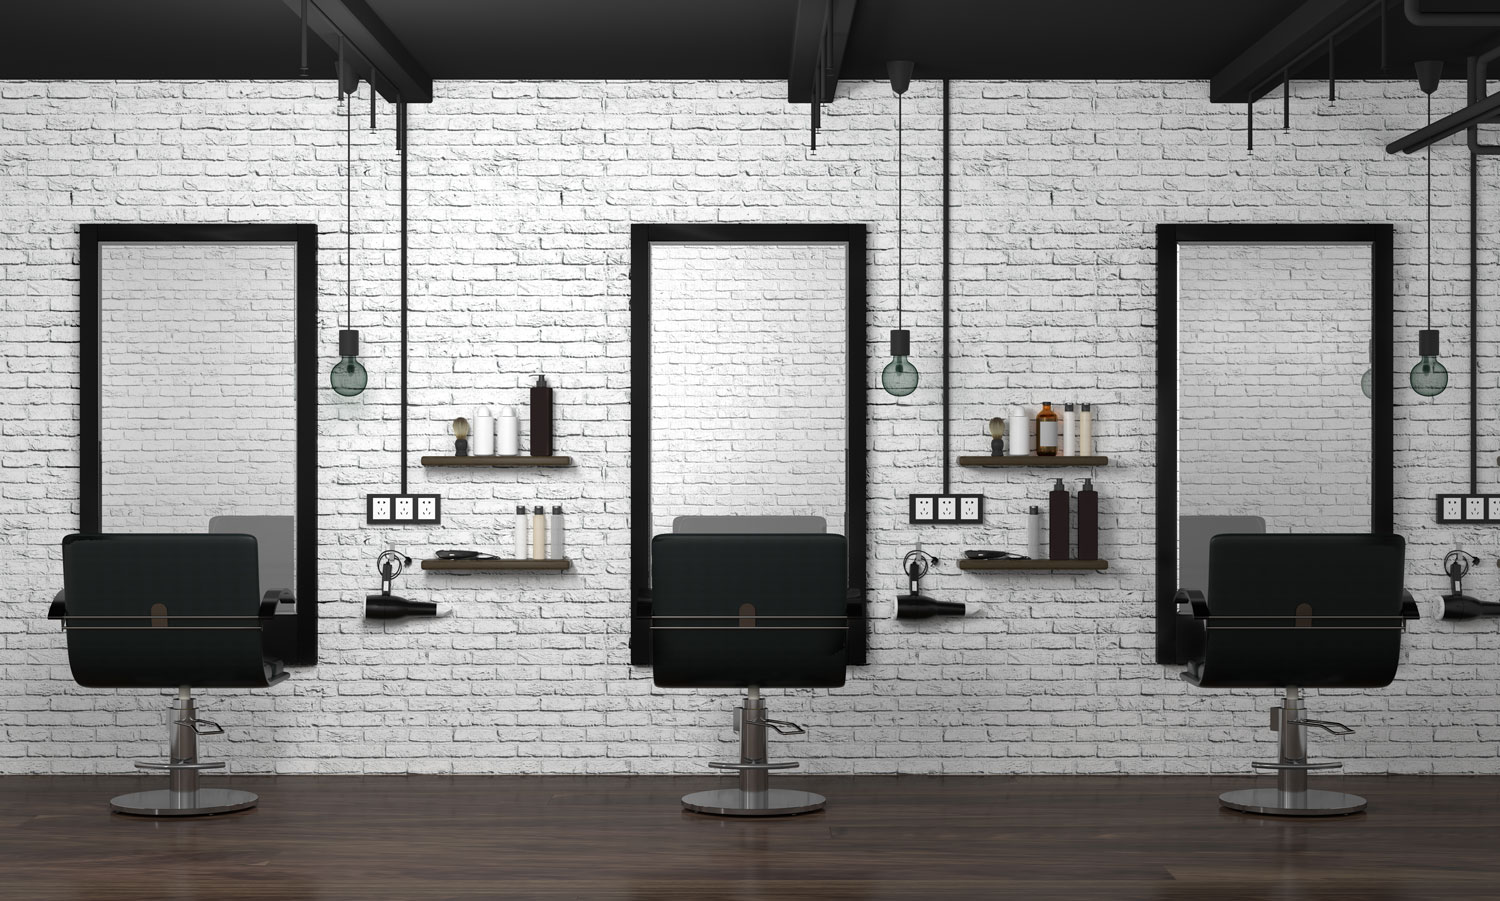 Design Thinking In Action: How One Hair Salon Franchise Innovated To The Top